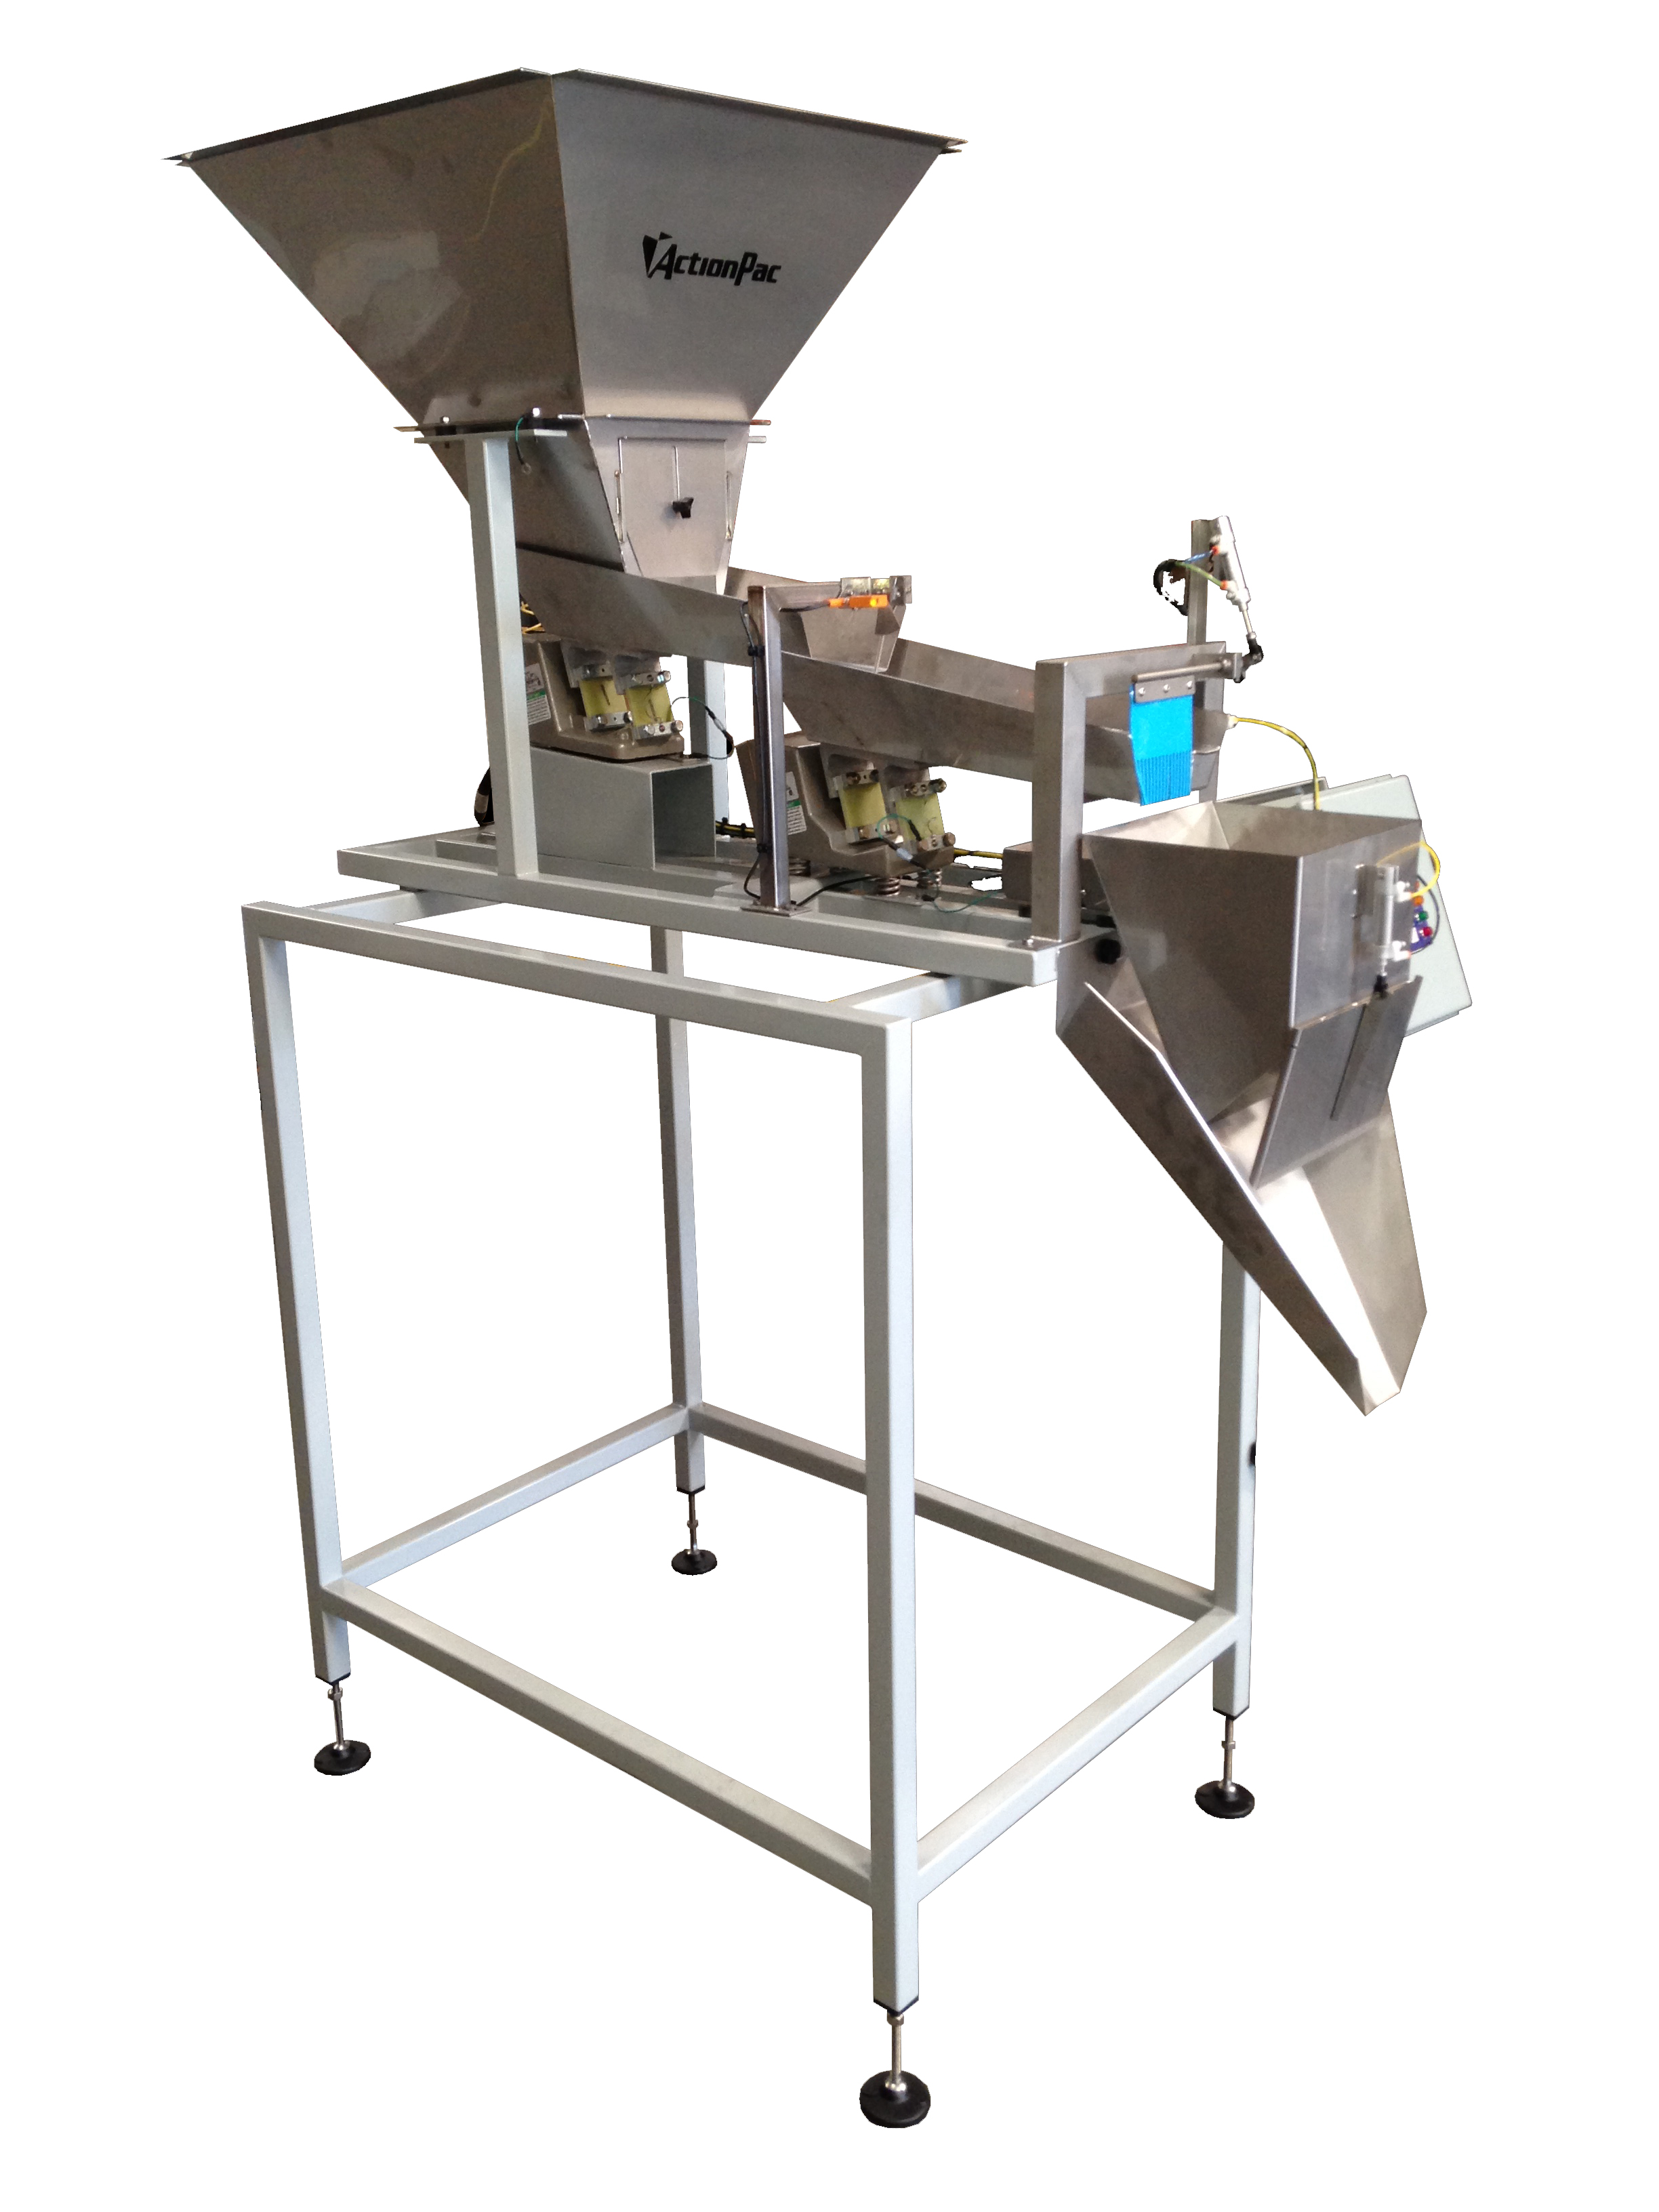 Packaging equipment for granola,Packaging equipment for cereal,Packaging equipment for cereals,Packaging equipment for grains,packing machine,granola packing machine,cereal packing machine,grain packing machine,granola packing equipment, grain packing equipment,cereal packing equipment, granola packaging machine,grain packaging machine,cereal packaging machine,granola bagger,cereal bagger,grain bagger,granola bagging machine,cereal bagging machine,grain bagging machine,granola weighing and packing machine,cereal weighing and packing machine,grain weighing and packing machine, granola weighing and bagging machine,cereal weighing and bagging machine,grain weighing and bagging machine,granola packaging equipment,cereal packaging equipment,grains packaging equipment,granola automatic filling machine,cereal automatic filling machine,grains automatic filling machine,granola bagging system,cereal bagging system,grains bagging system,granola weigh filling system,cereal weigh filling system, grains weigh filling system,granola weight filler packaging machine,cereal weight filler packaging machine,grains weight filler packaging machine,granola weight filler,cereal weight filler,grains weight filler,granola high speed packaging machine,cereal high speed packaging machine,grain high speed packaging machine,high speed packaging machine for granola,high speed packaging machine for cereal,high speed packaging machine for grains,heat seal bagging machine for granola,heat seal bagging machine for cereal,heat seal bagging machine for grains,packaging systems for granola,packaging systems for cereals,packaging systems for grains,packaging machine for cereals,packaging machine for granola,packaging machine for grains,granola stand pouch packing machine,cereal stand pouch packing machine,grains stand pouch packing machine,stand pouch packing machine for granola,stand pouch packing machine for cereals,stand pouch packing machine for grains,zipper bag packing machine for granola,zipper ba